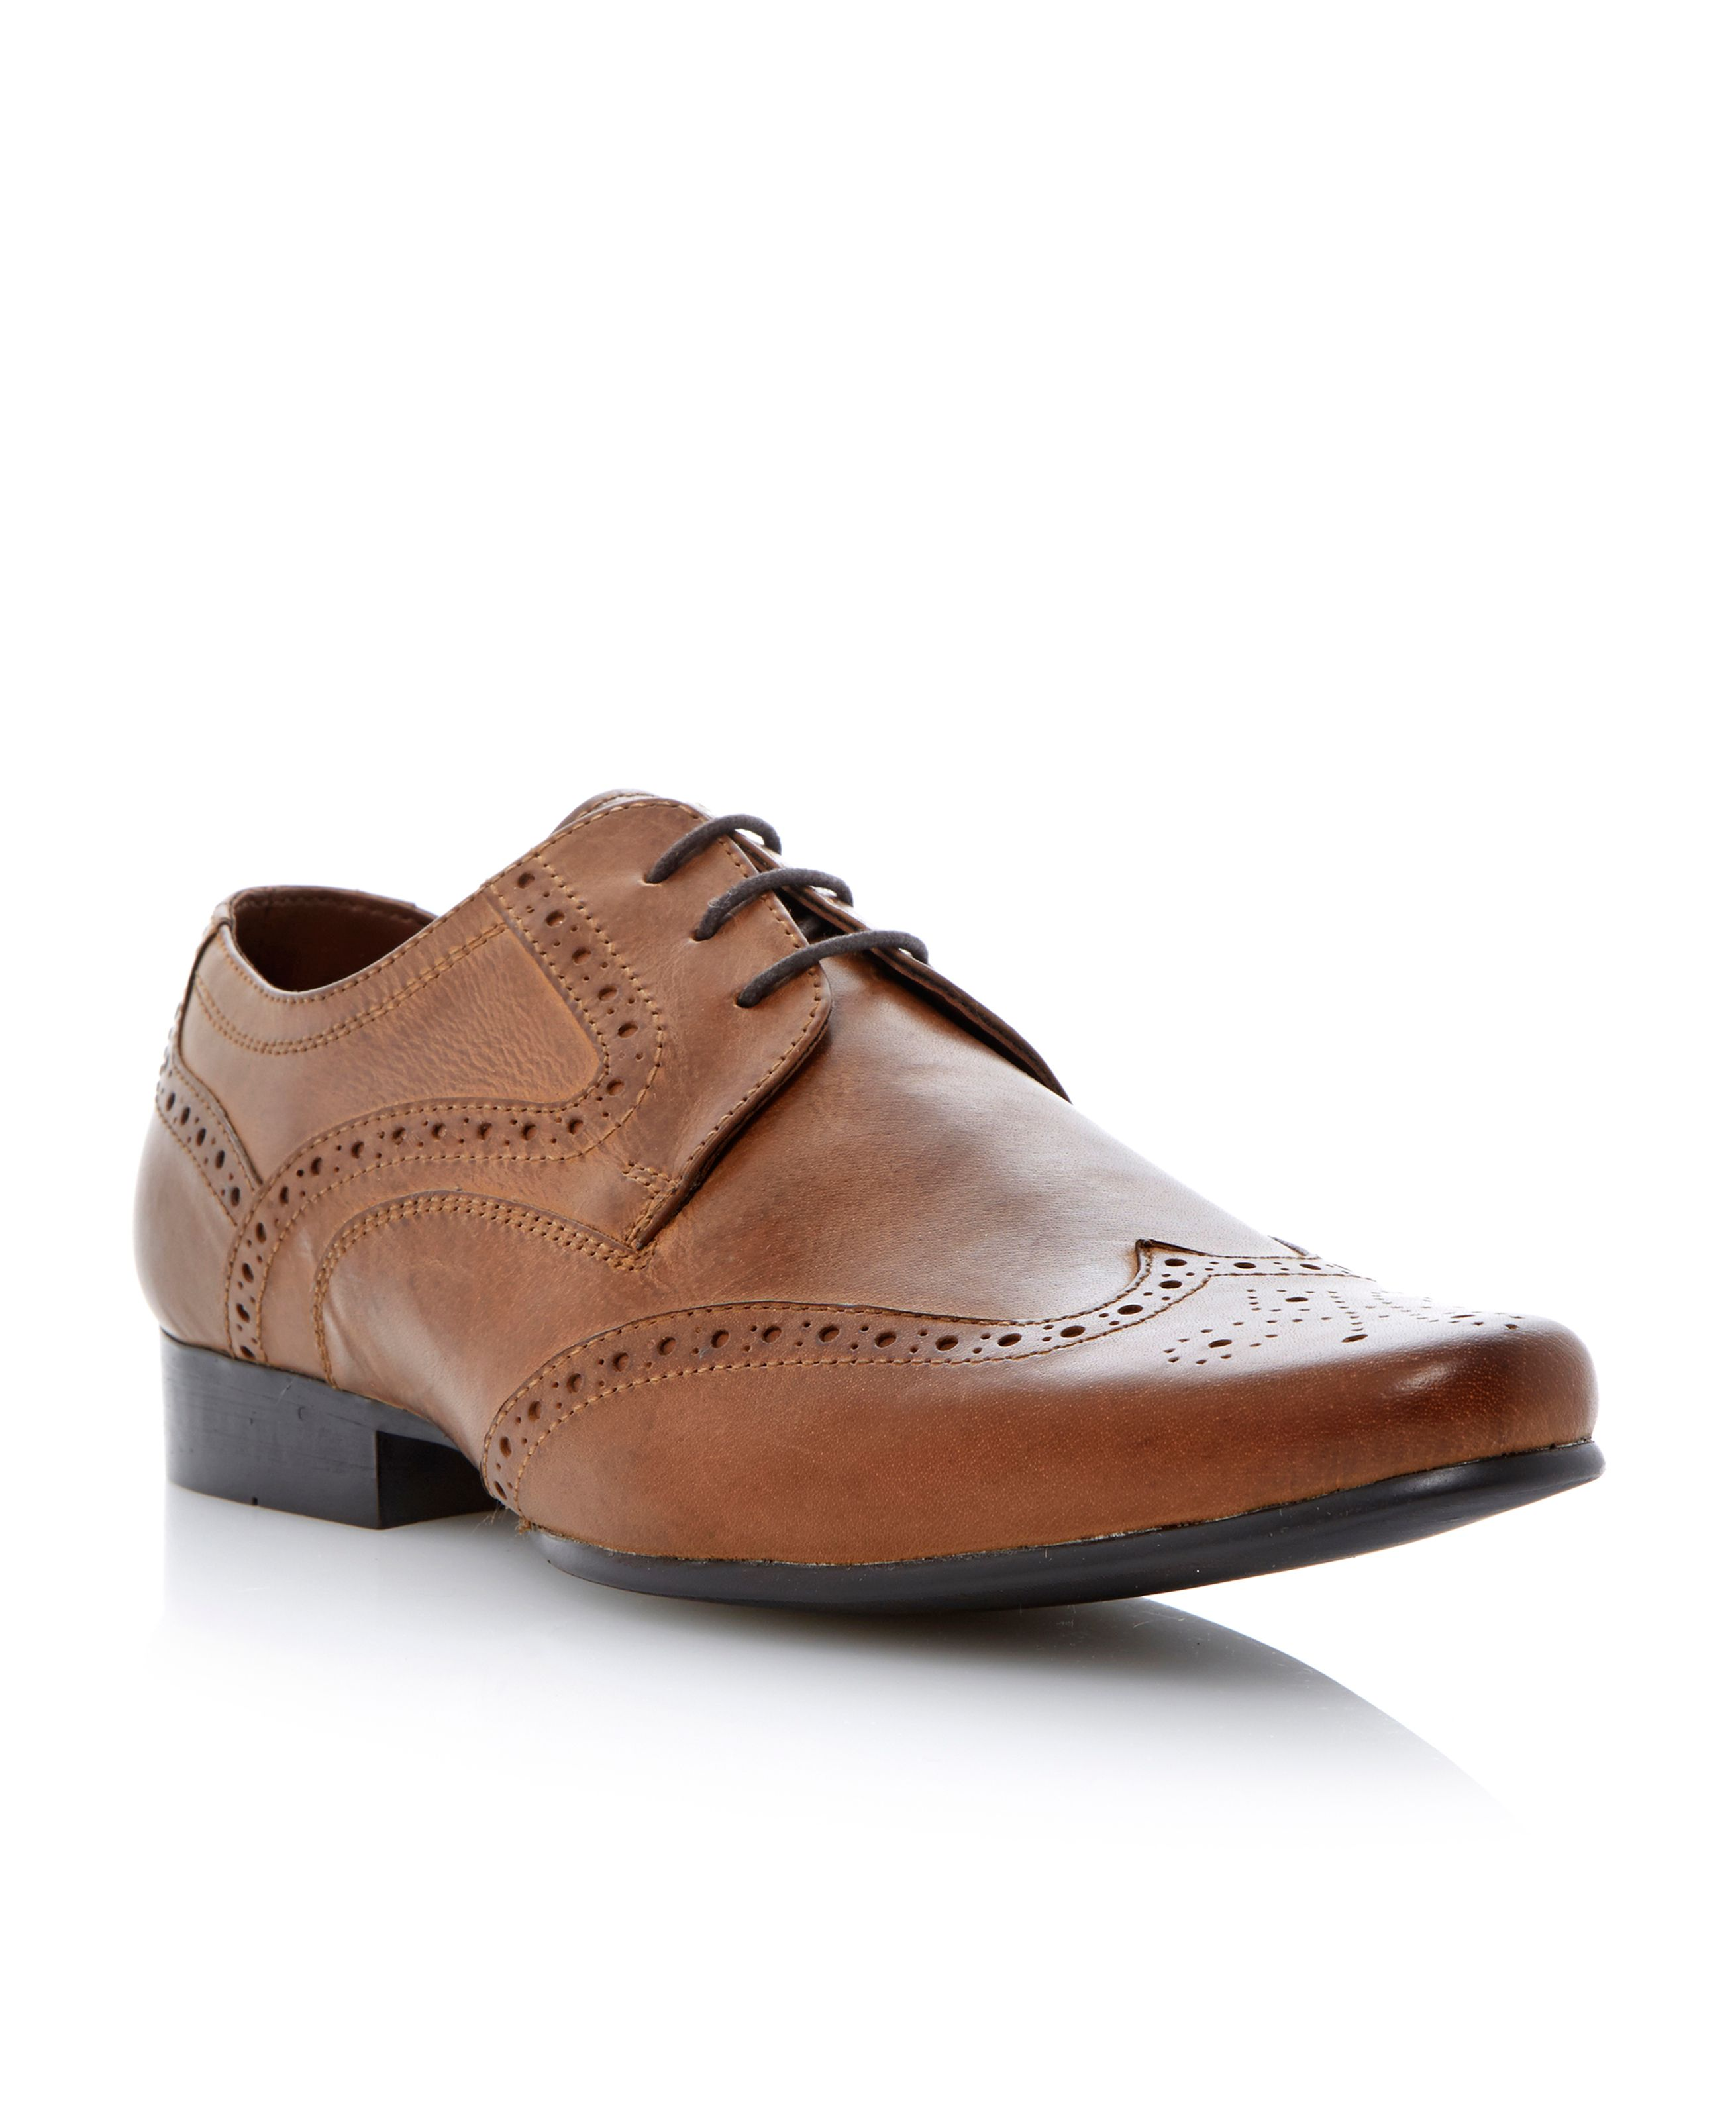 Adams lace up almond toe wingtip brogues